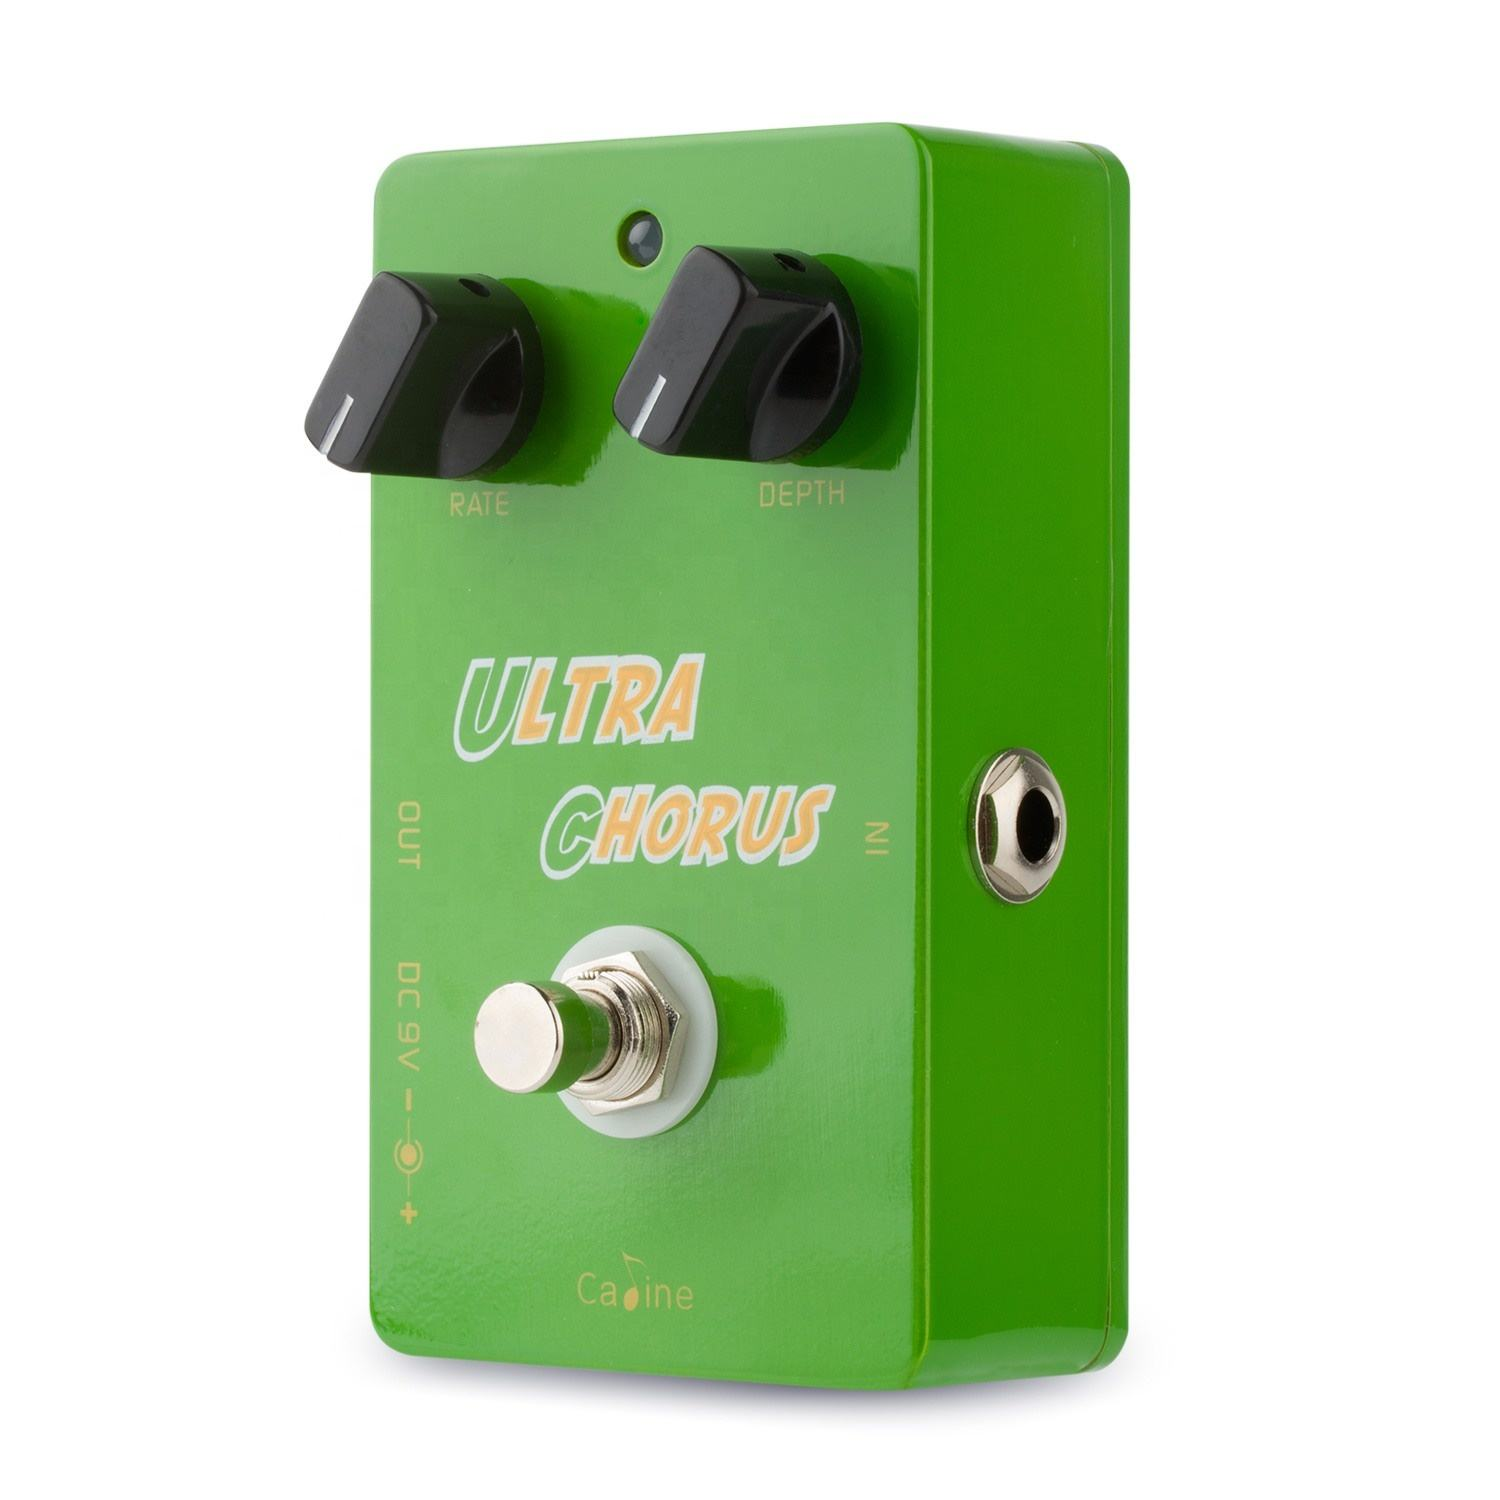 Caline CP-28 Ultra Chorus Green Guitar Effect Pedal Durable and High-quality Guitar Effect